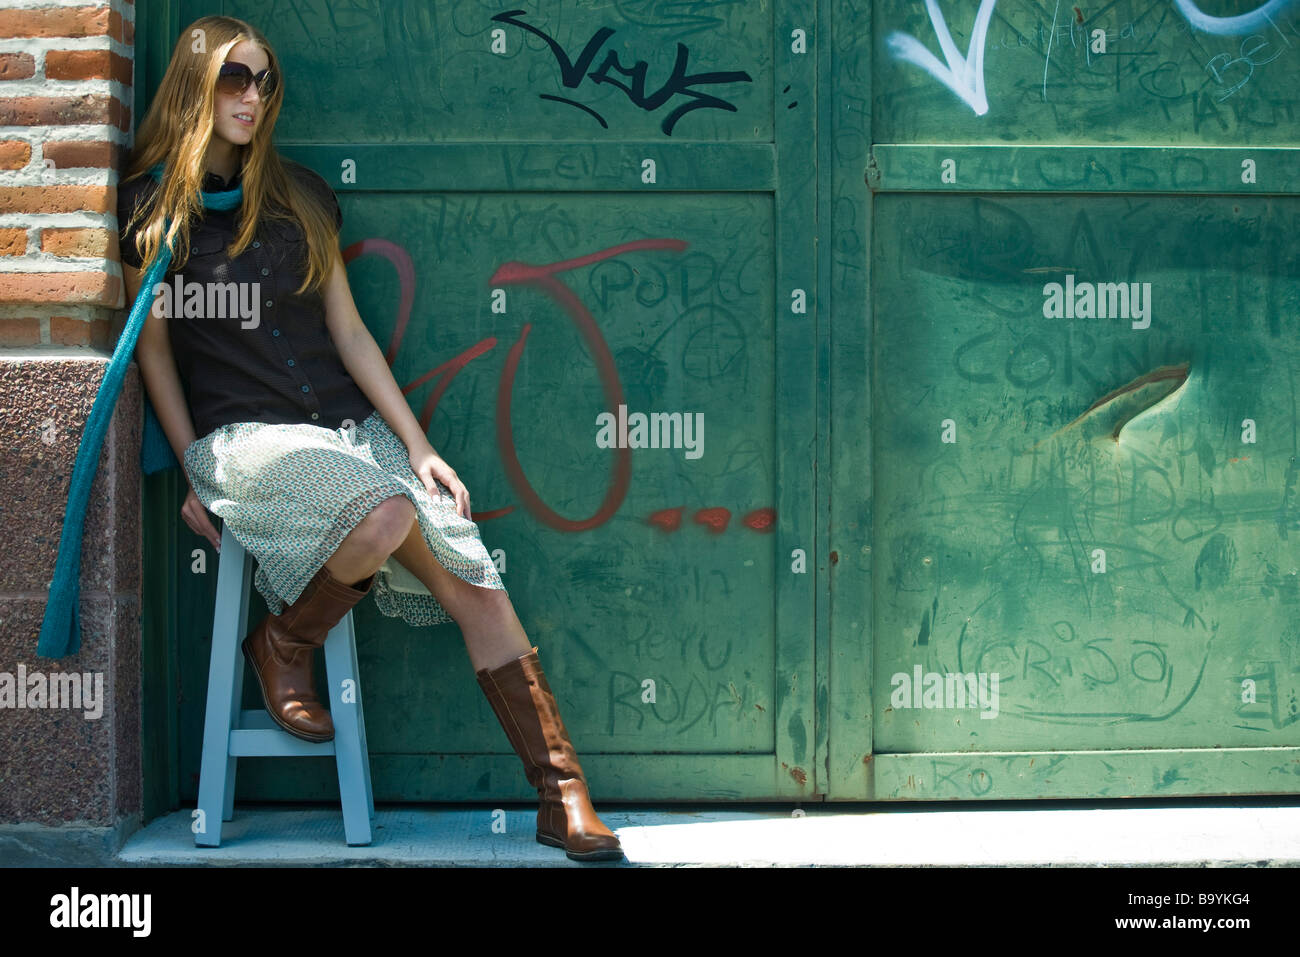 Trendy young woman sitting on stool in front of graffitied wall - Stock Image